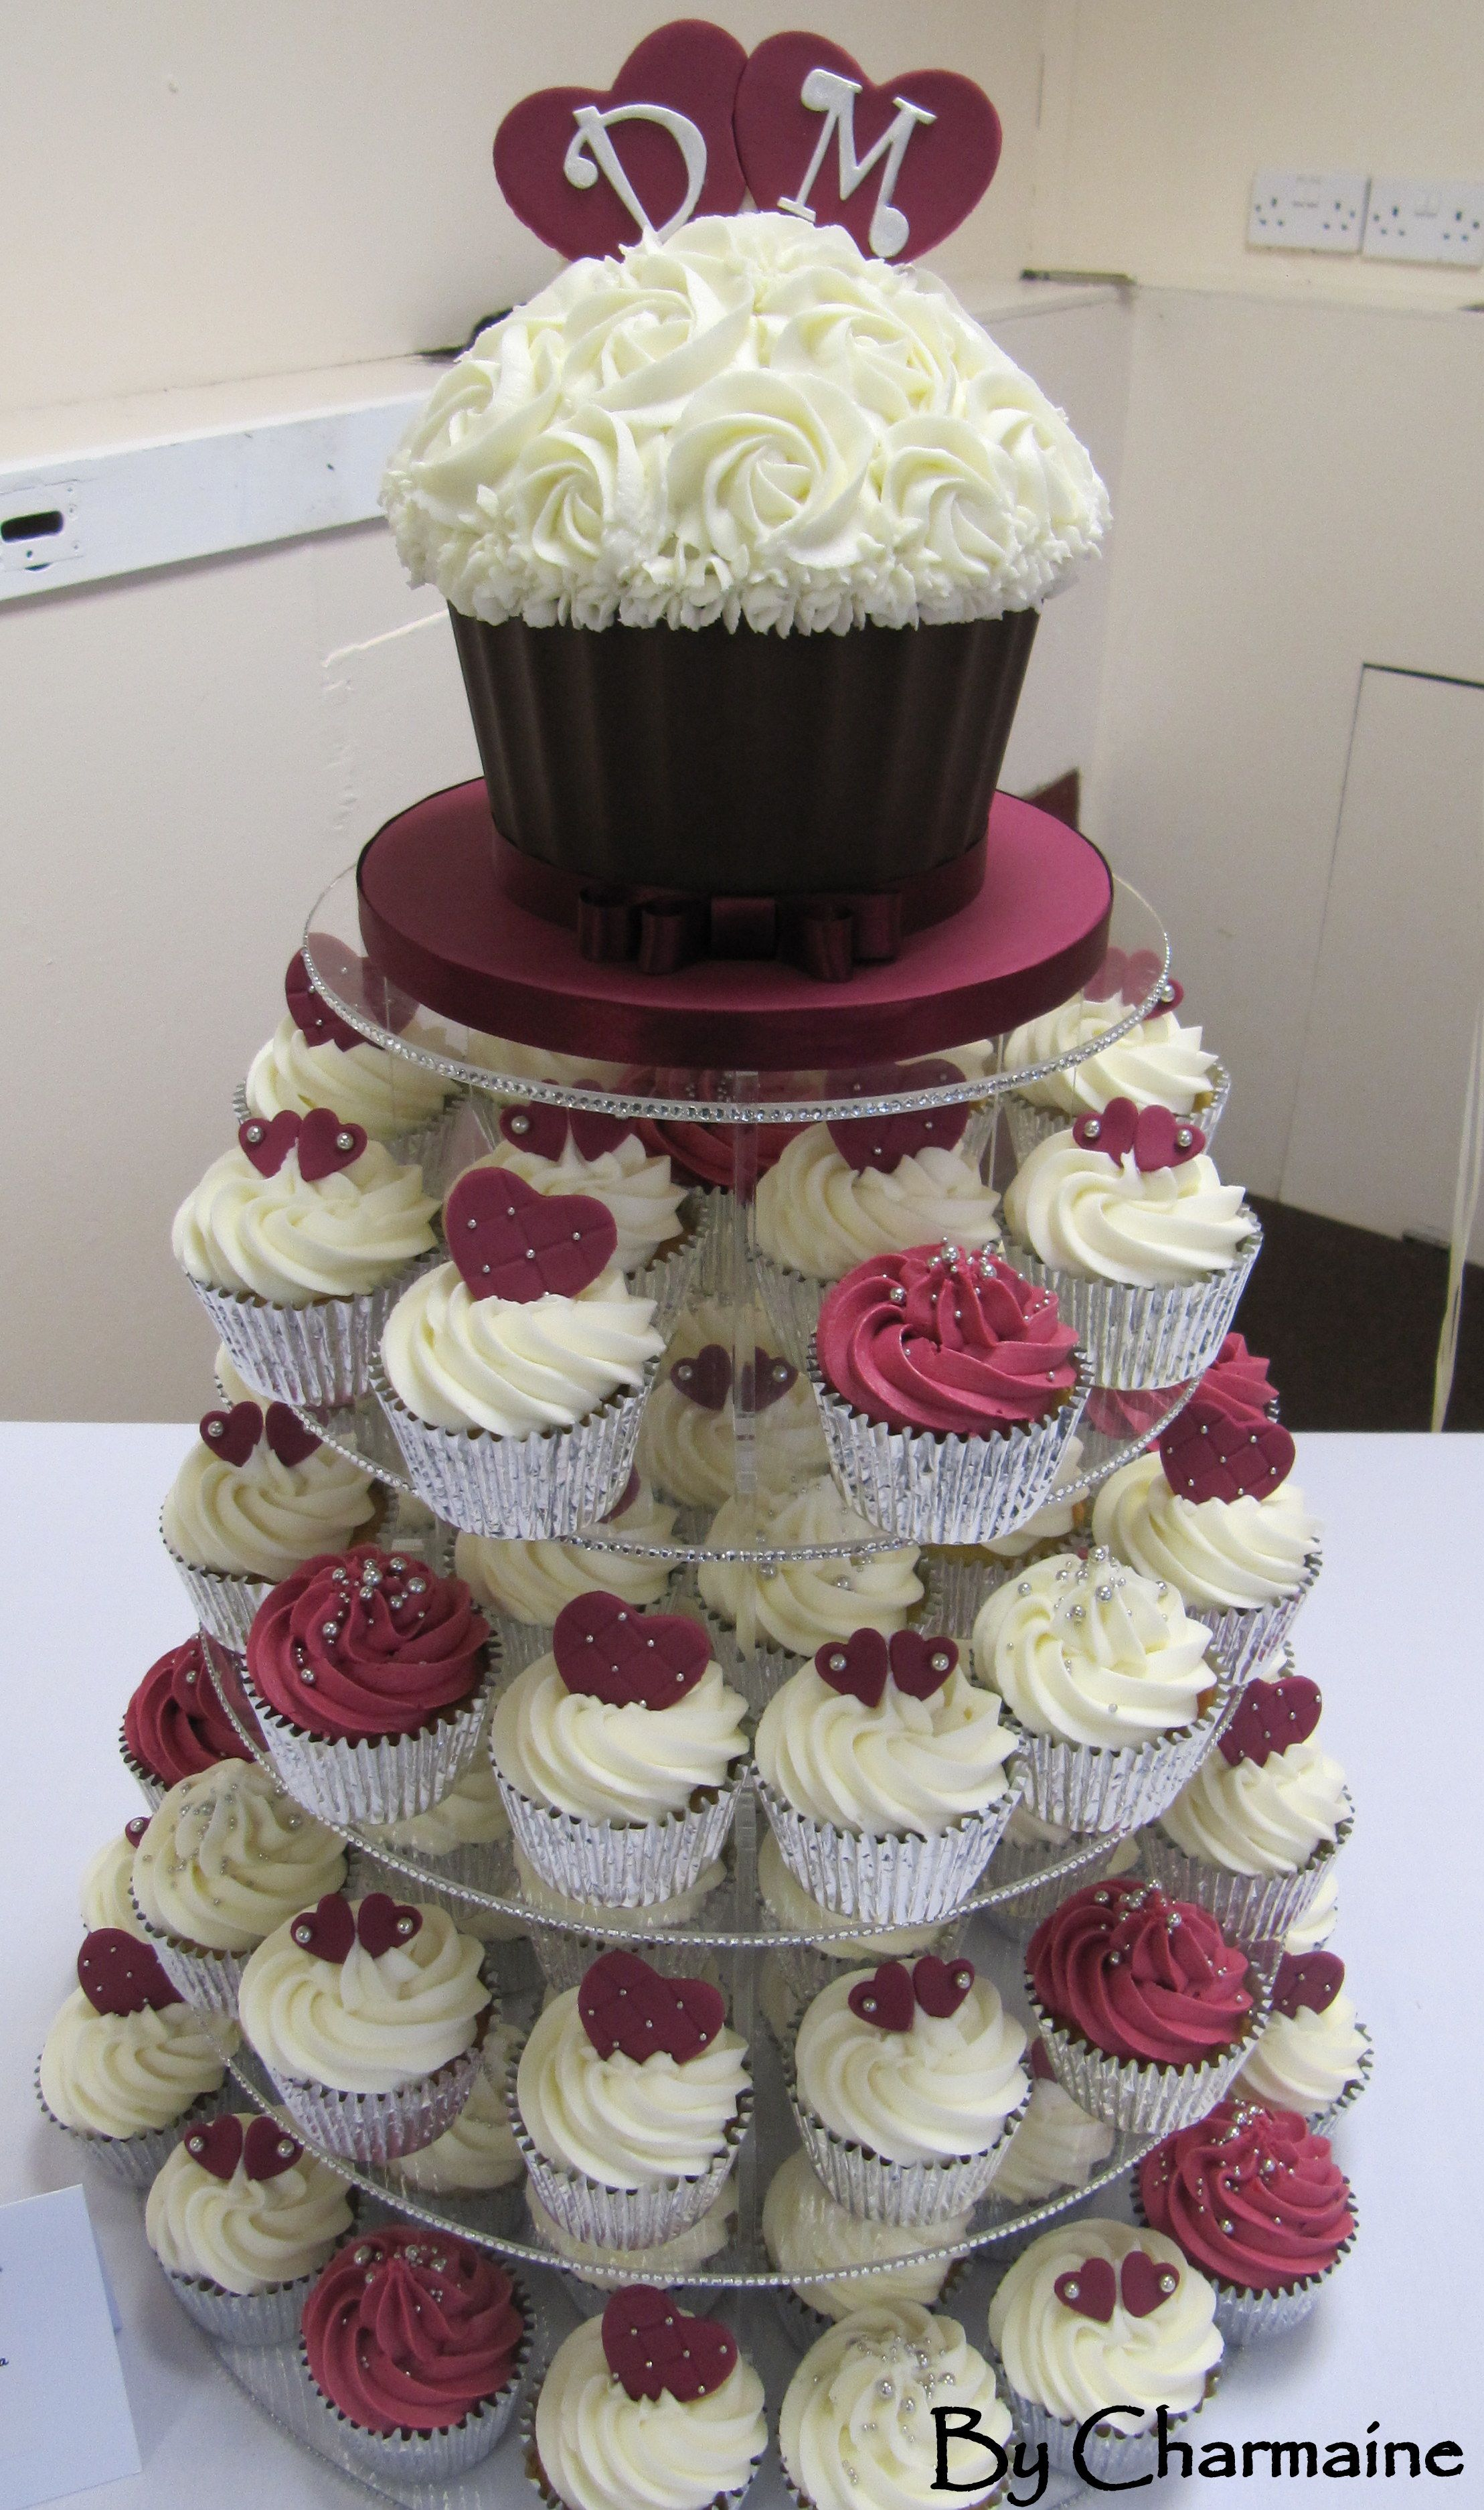 Burgundy and White wedding tower Wedding cakes with